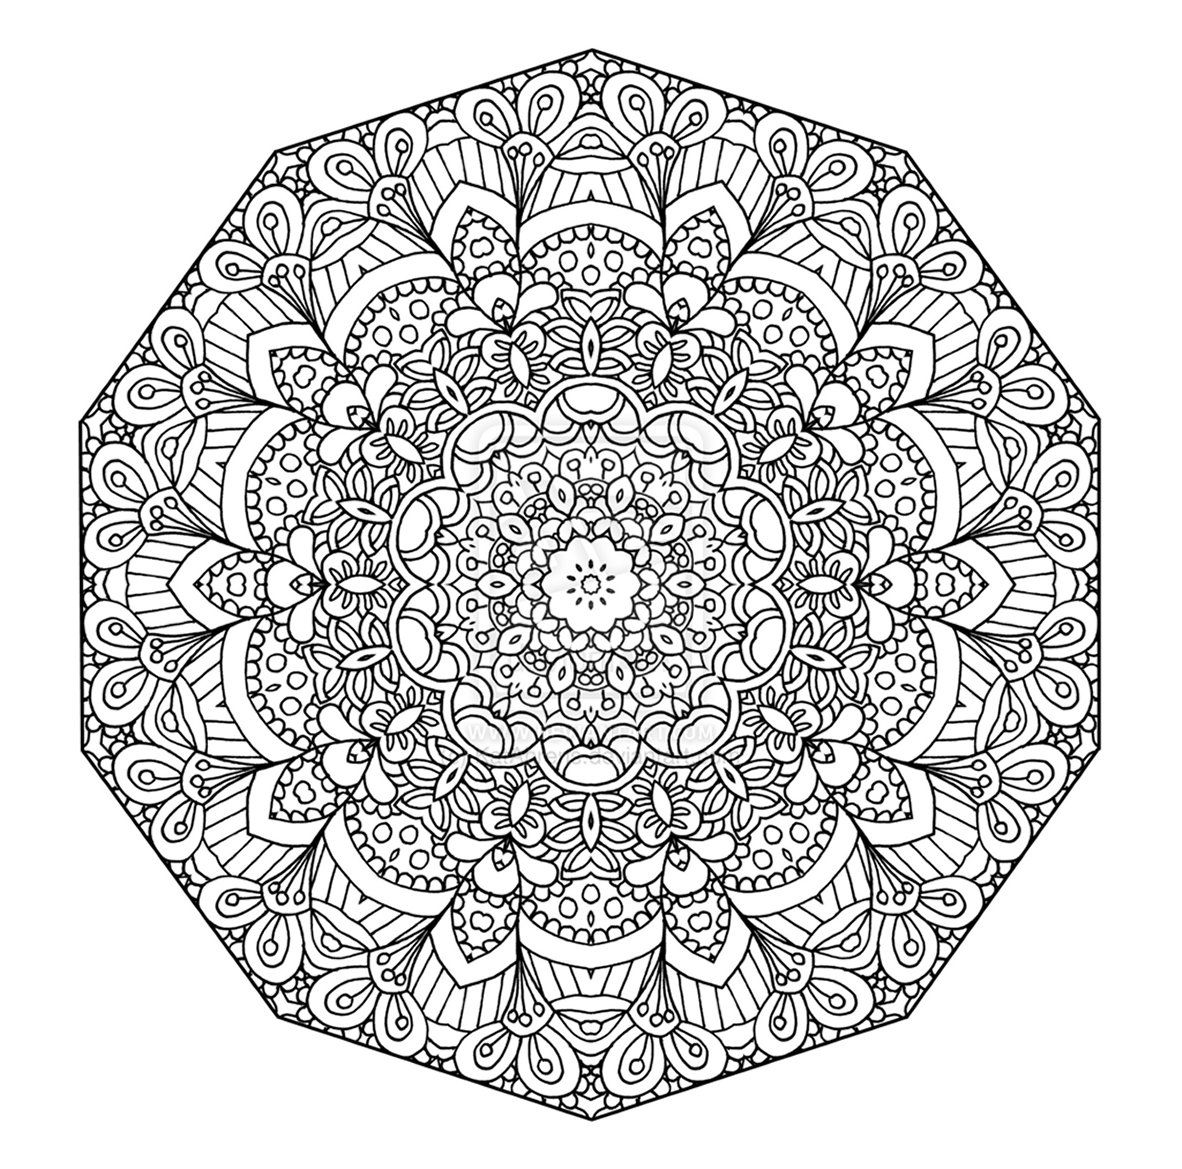 Four More Mandala Coloring Pages News Bubblews Abstract Coloring Pages Detailed Coloring Pages Mandala Coloring Pages